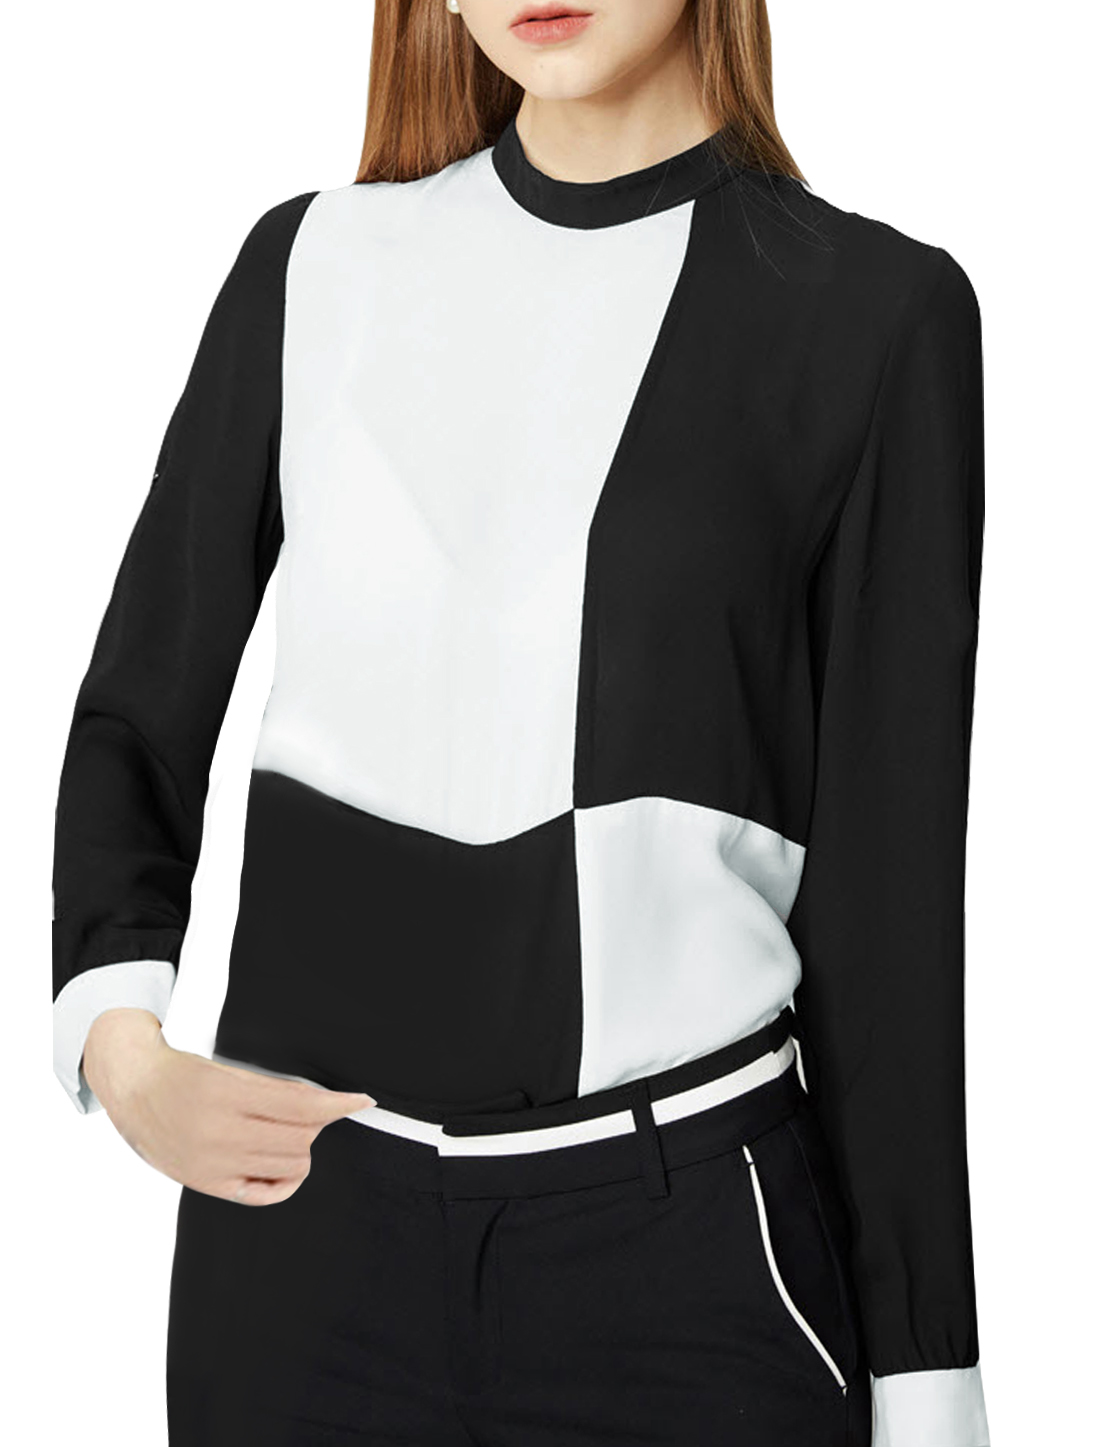 Women Rolled Up Sleeves Color Block Tunic Chiffon Blouse Black White XS